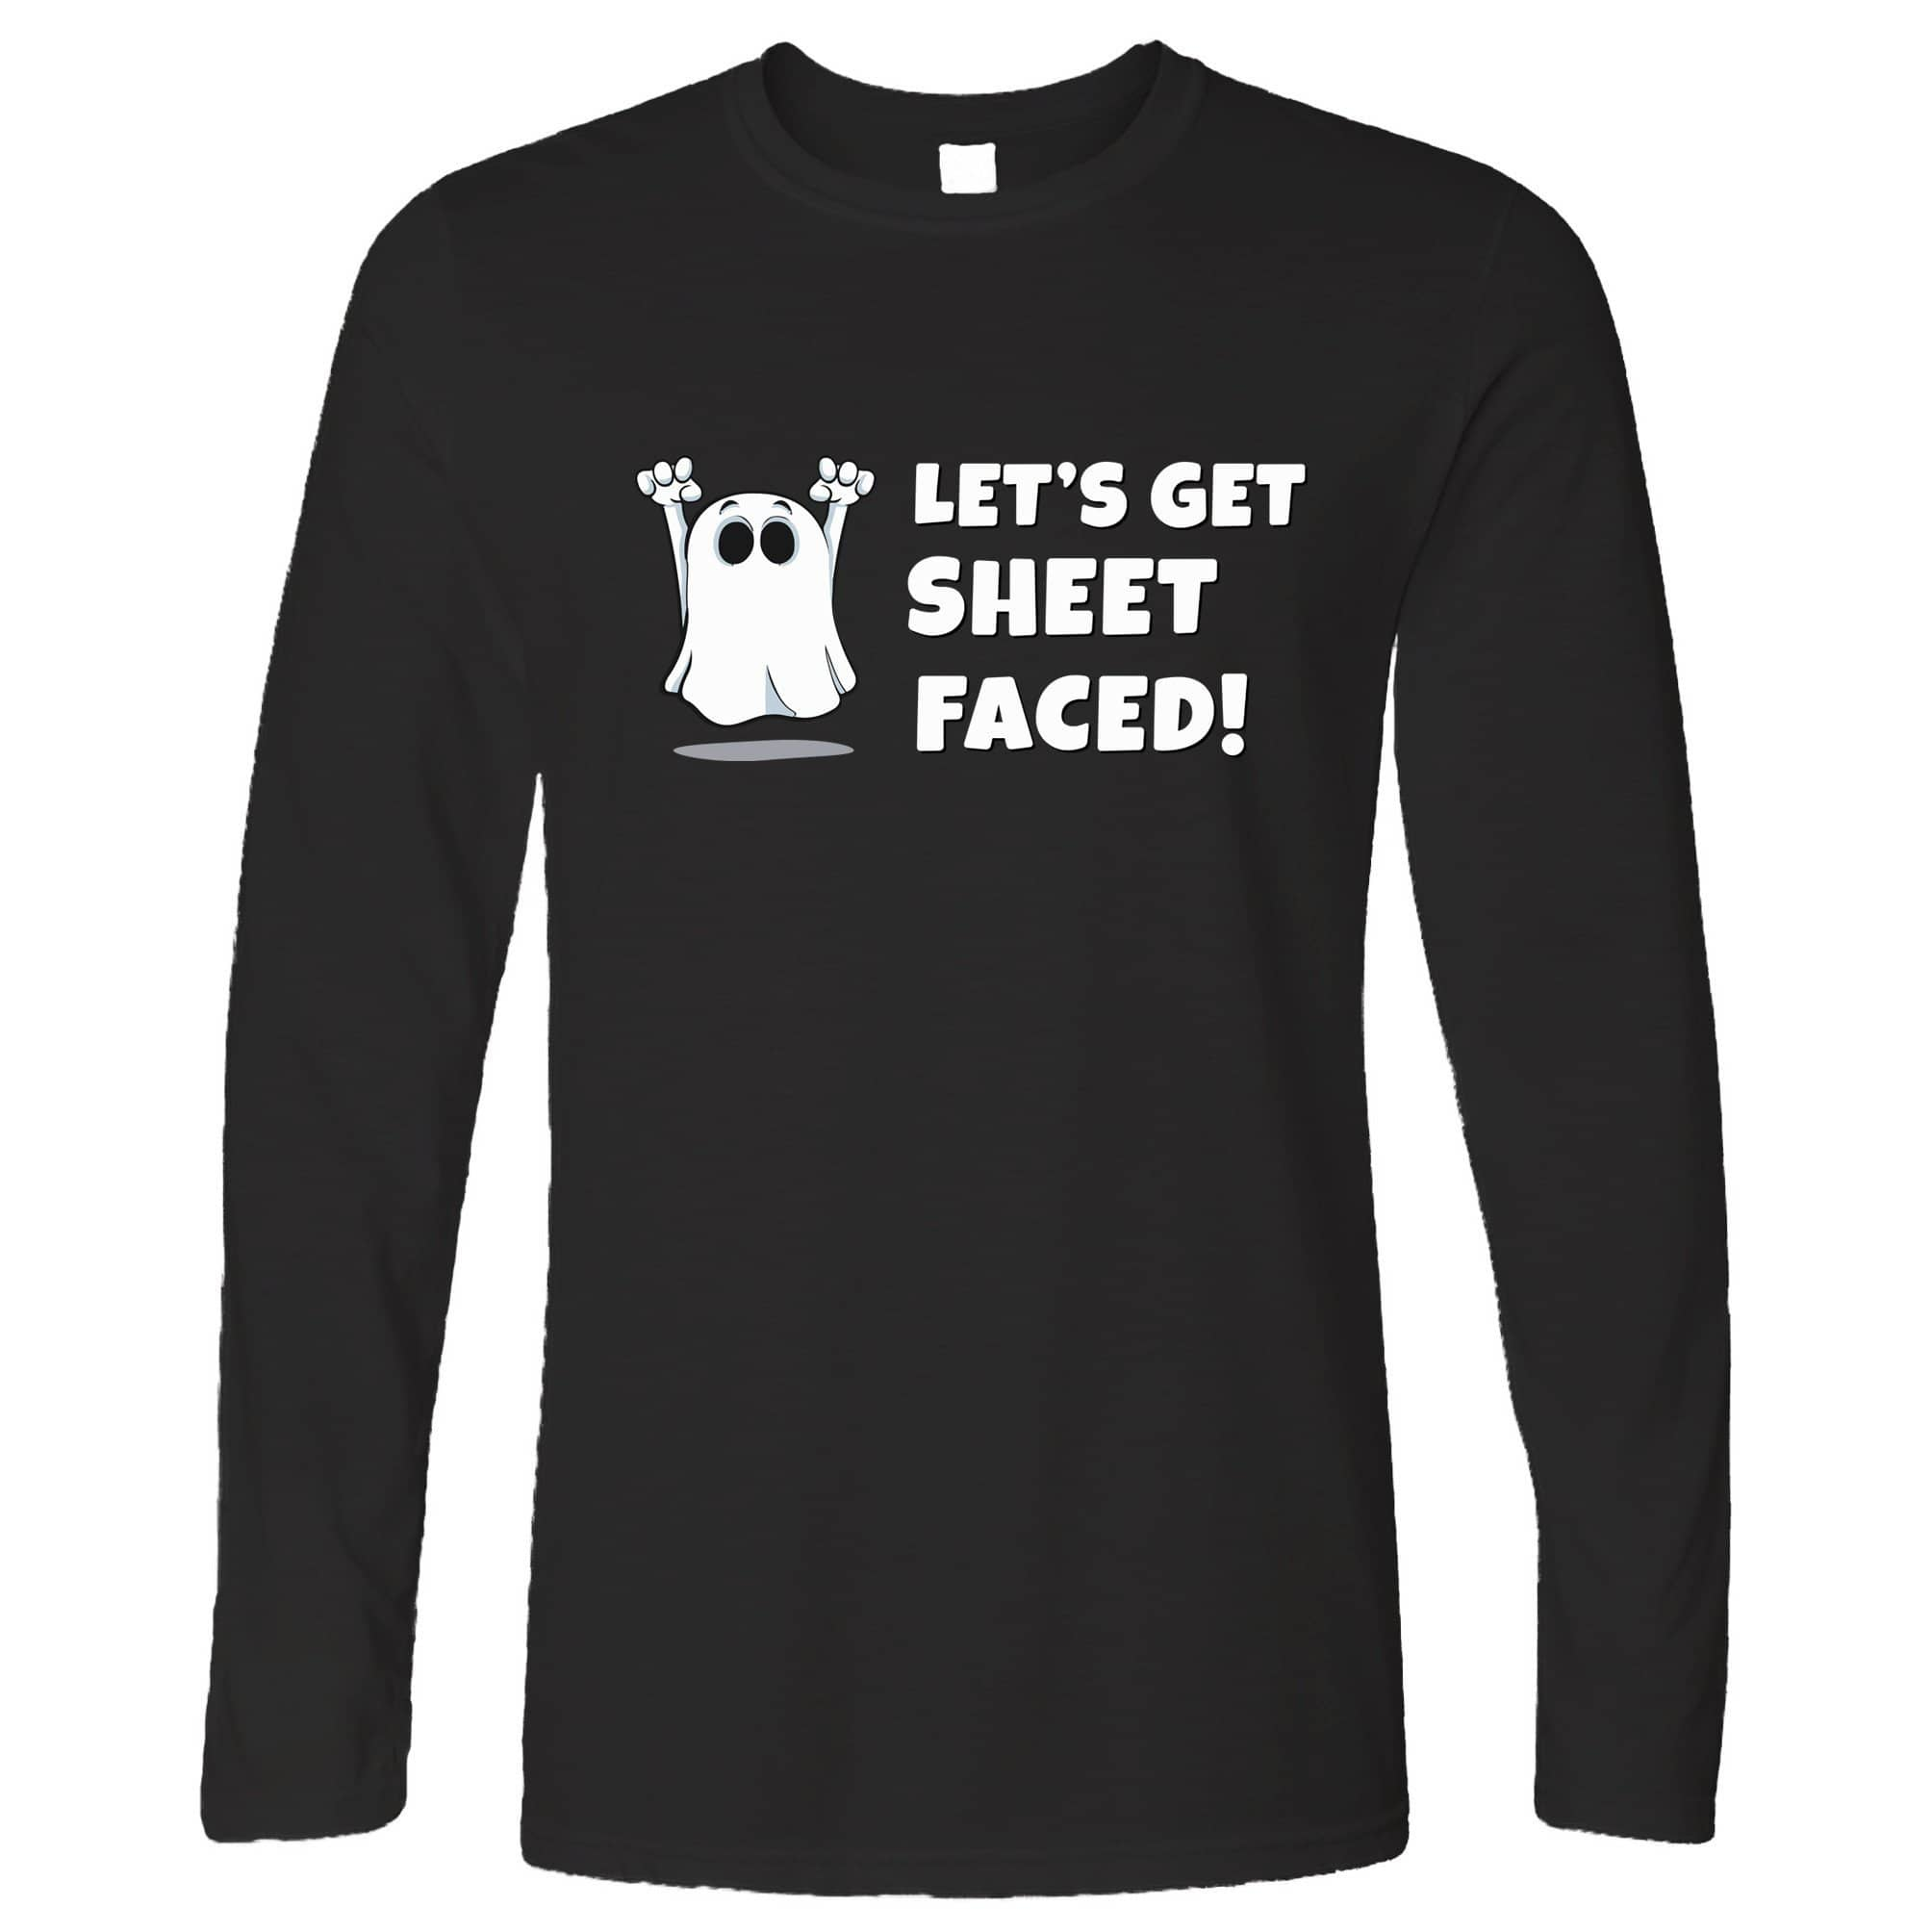 Novelty Halloween Long Sleeve Let's Get Sheet Faced T-Shirt